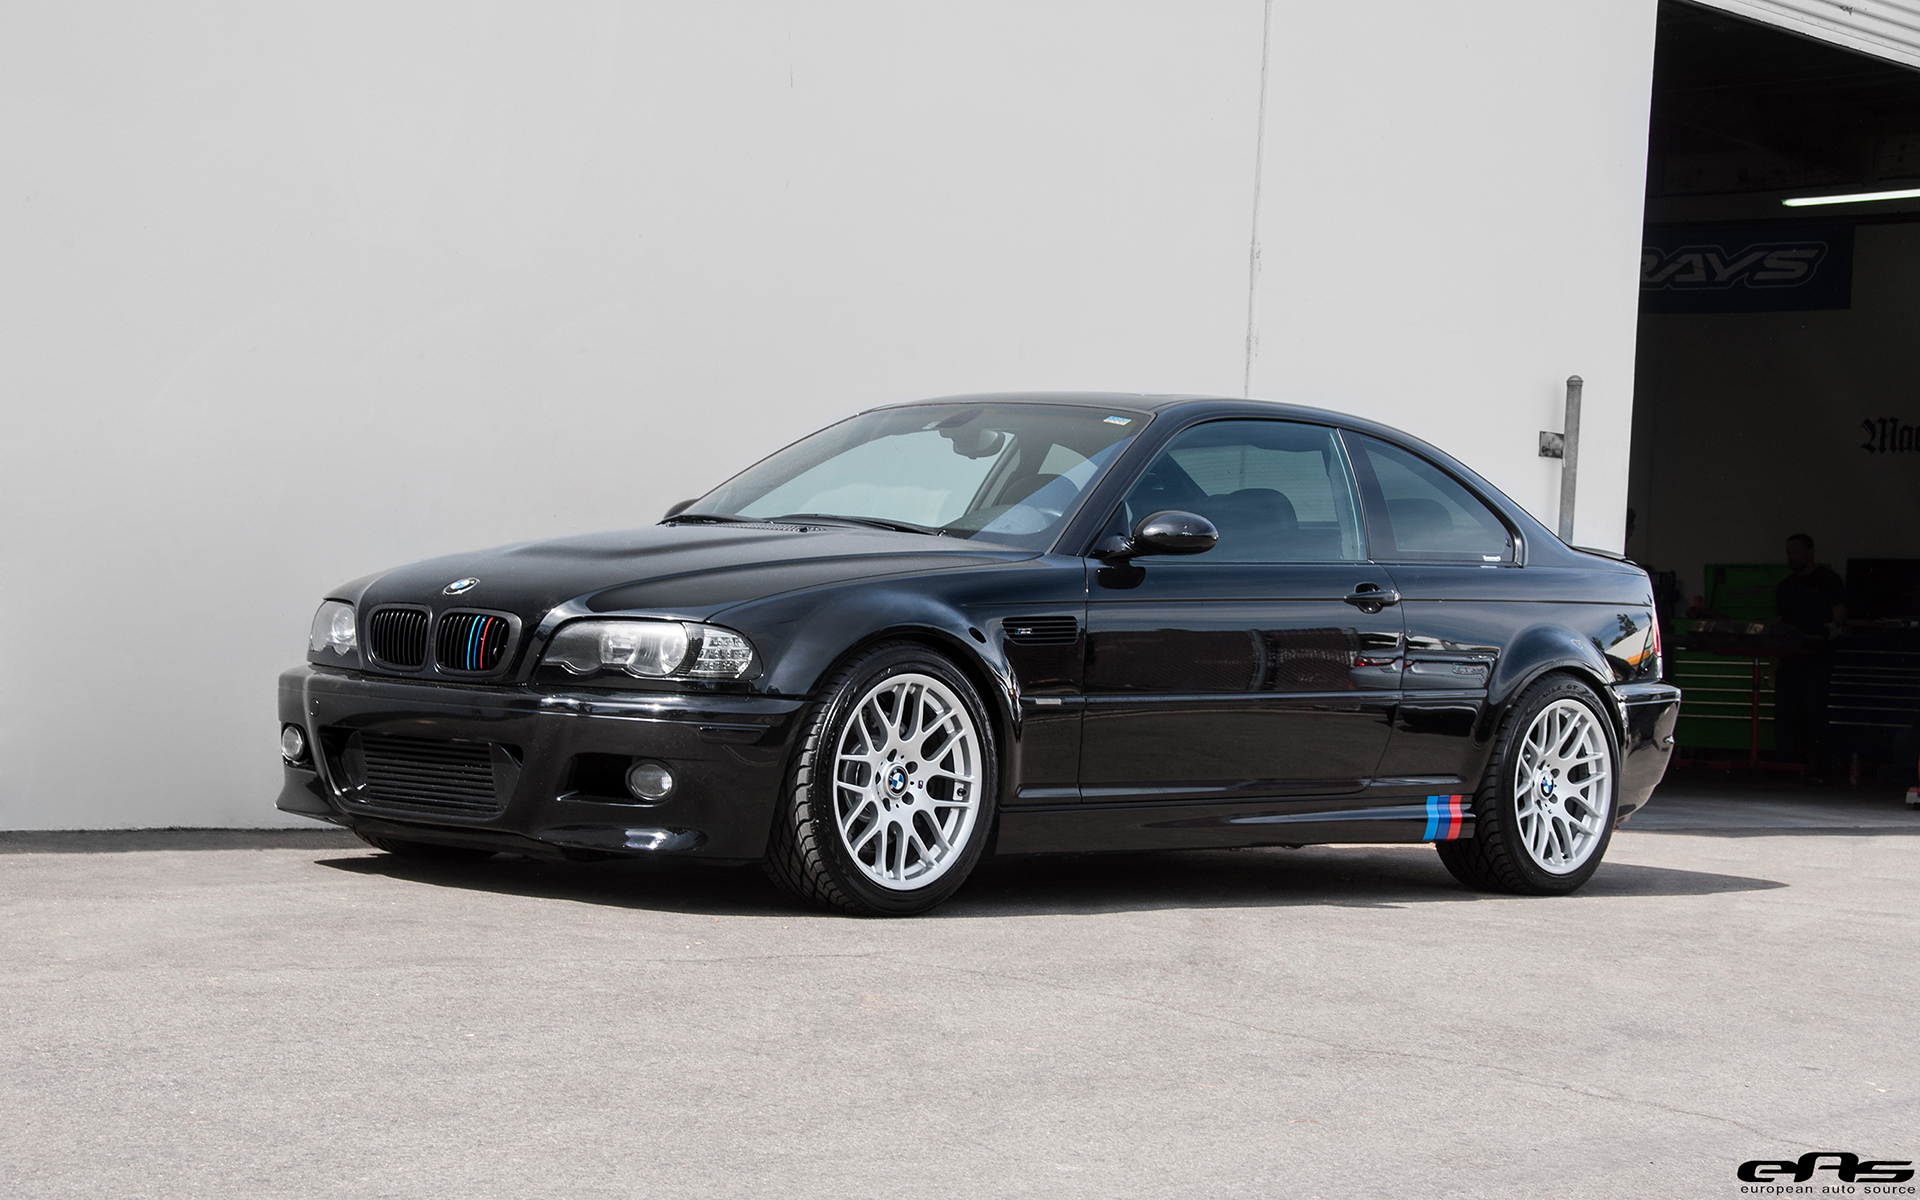 BMW E46 M3 Gets Supercharged 12